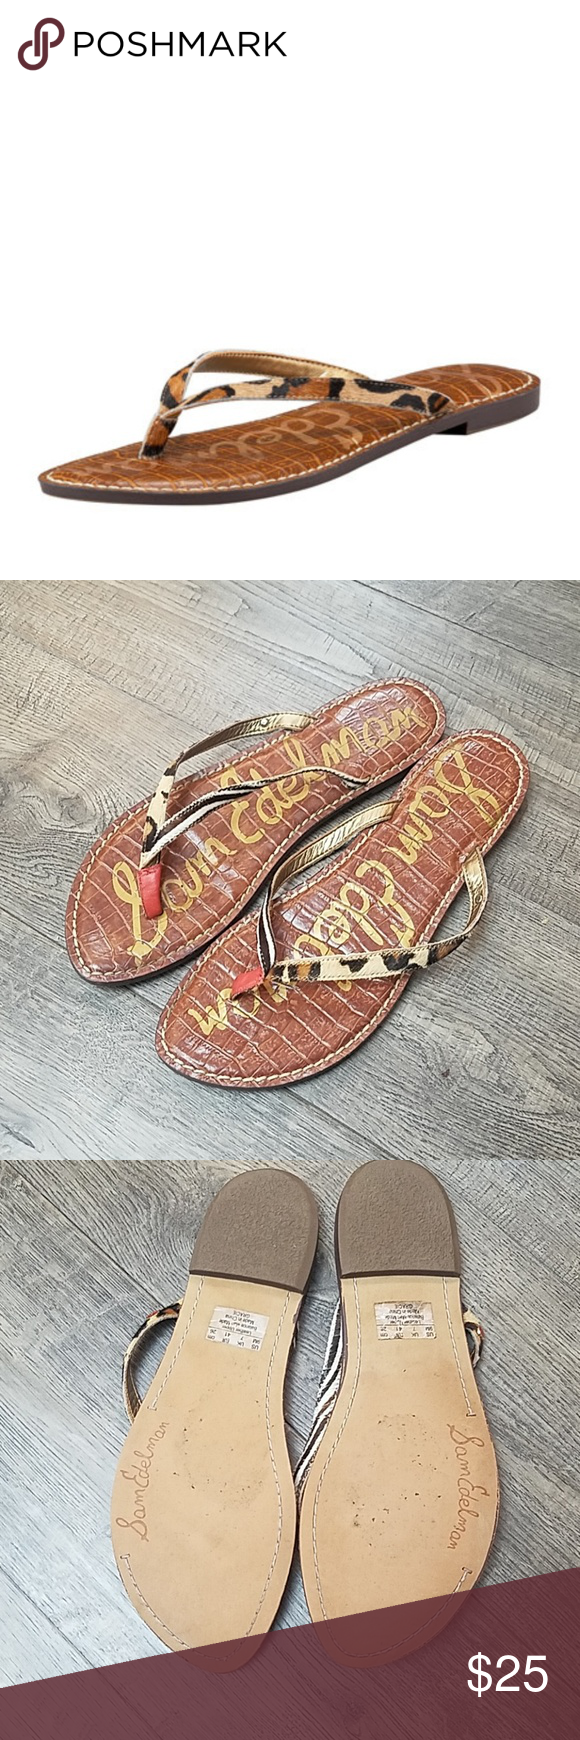 b786d9858 Sam Edelman Women s Gracie Flat Thong Sandal 9 Pre-owned in great shape.  Size 9 Sam Edelman Shoes Sandals